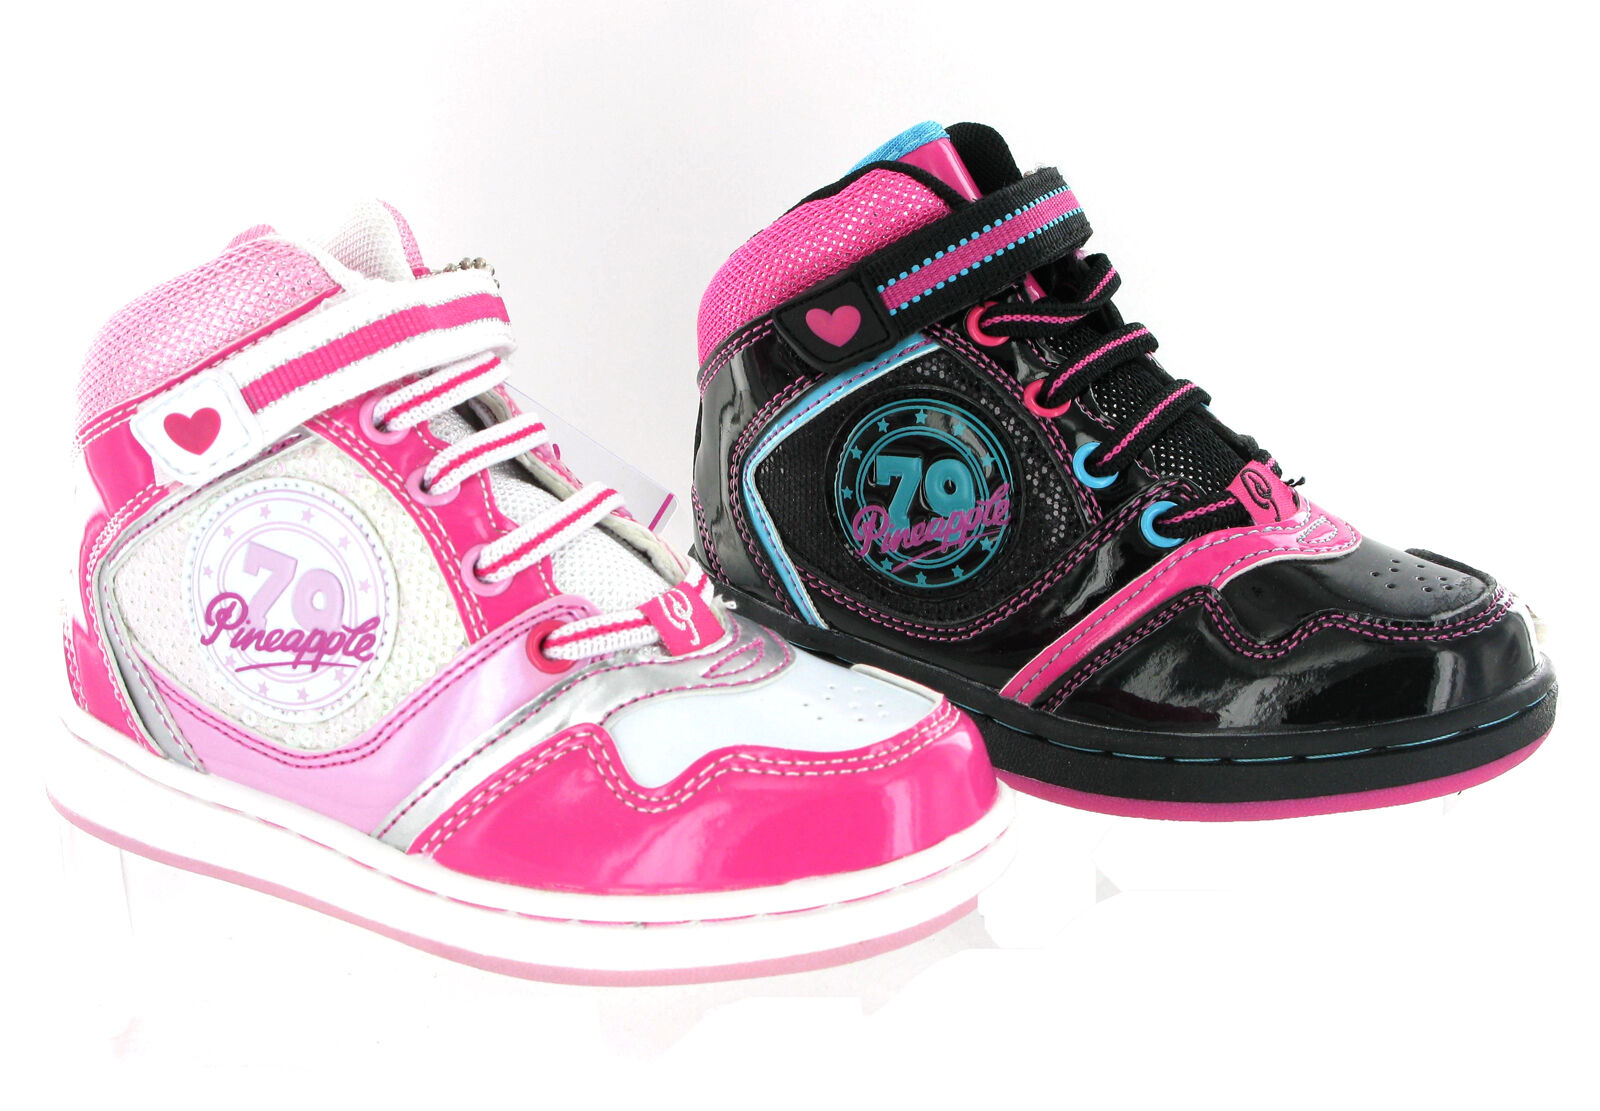 LADIES PINEAPPLE HI TOPS TRAINERS GIRLS ANKLE BASKETBALL SCHOOL BOOTS SHOES SIZE